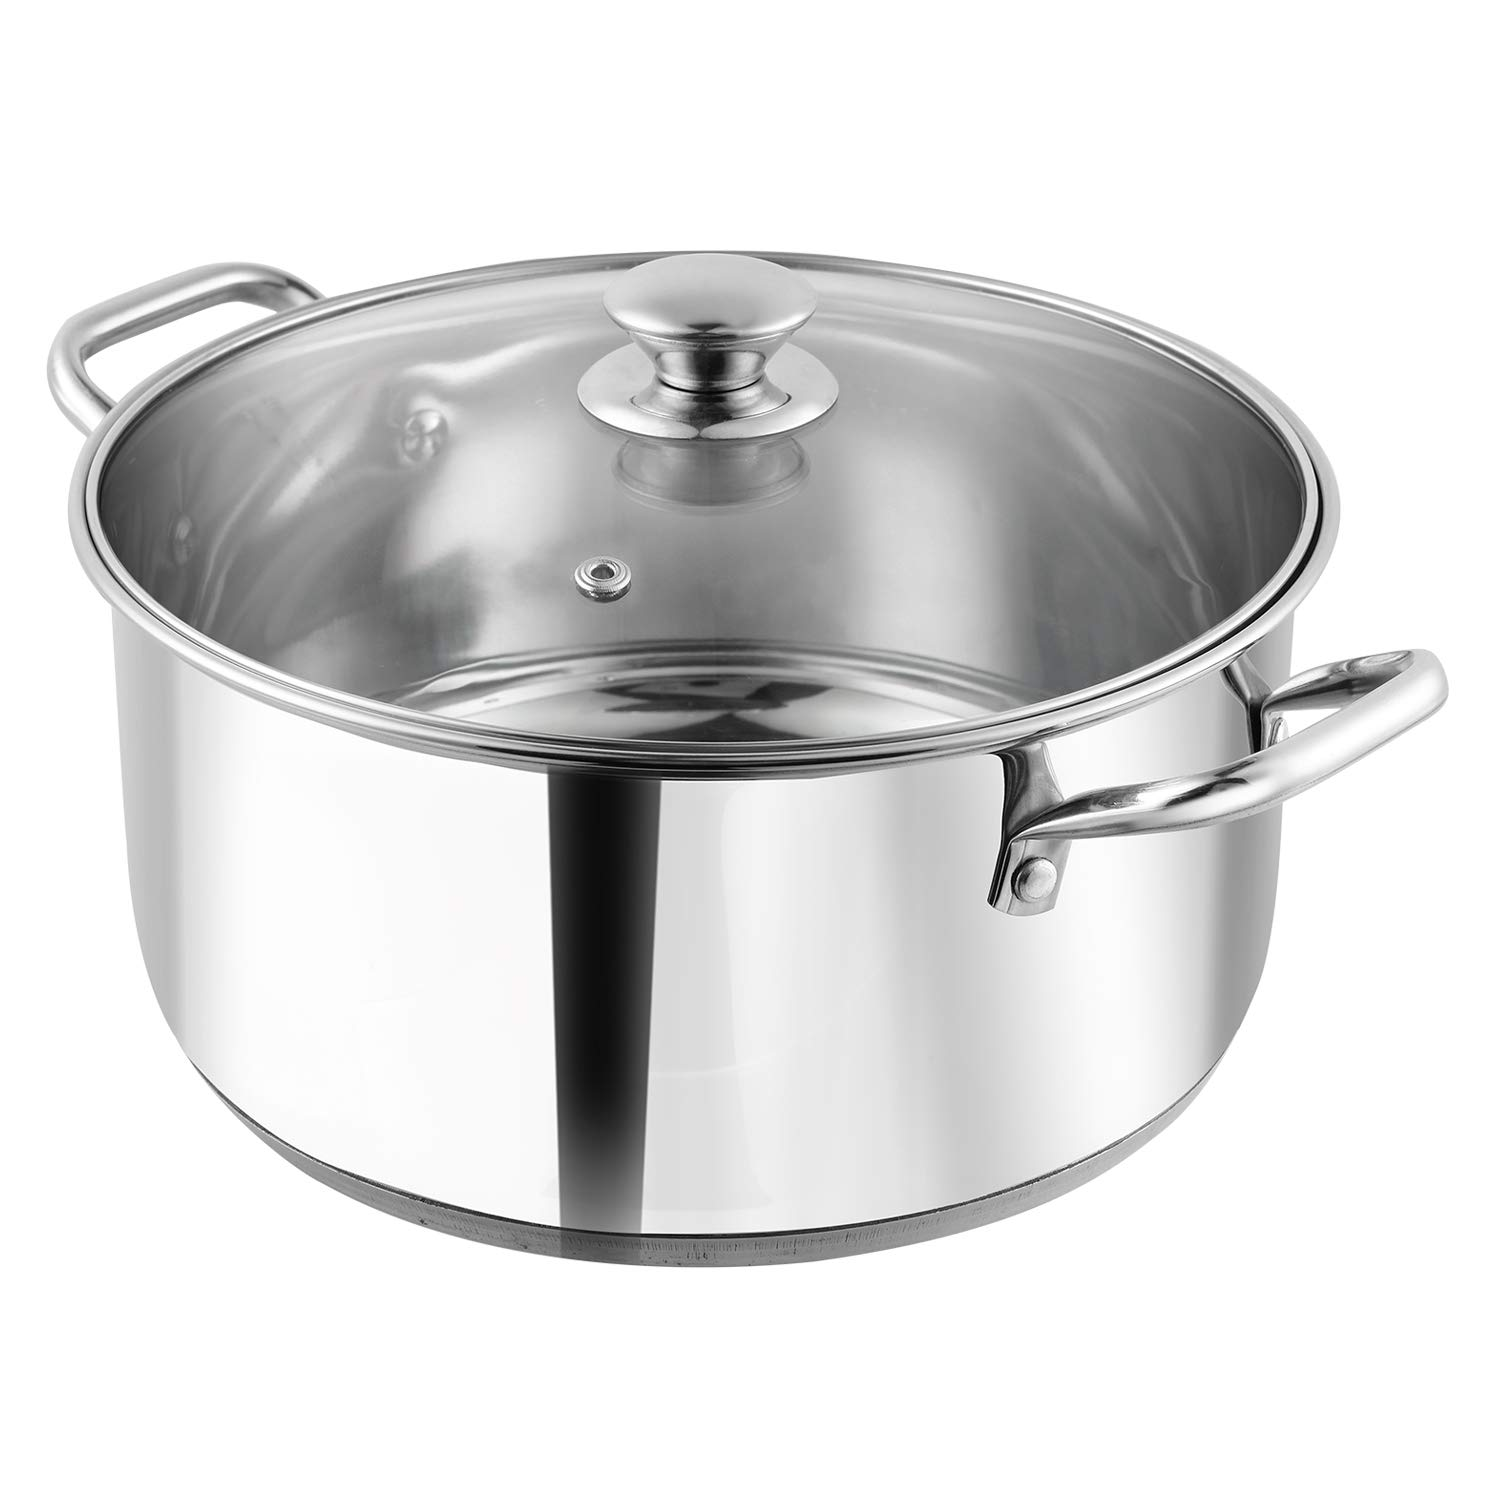 Vinod Rom-24 Stainless Steel Induction Friendly 24cm Casserole with lid (5ltr, Silver)